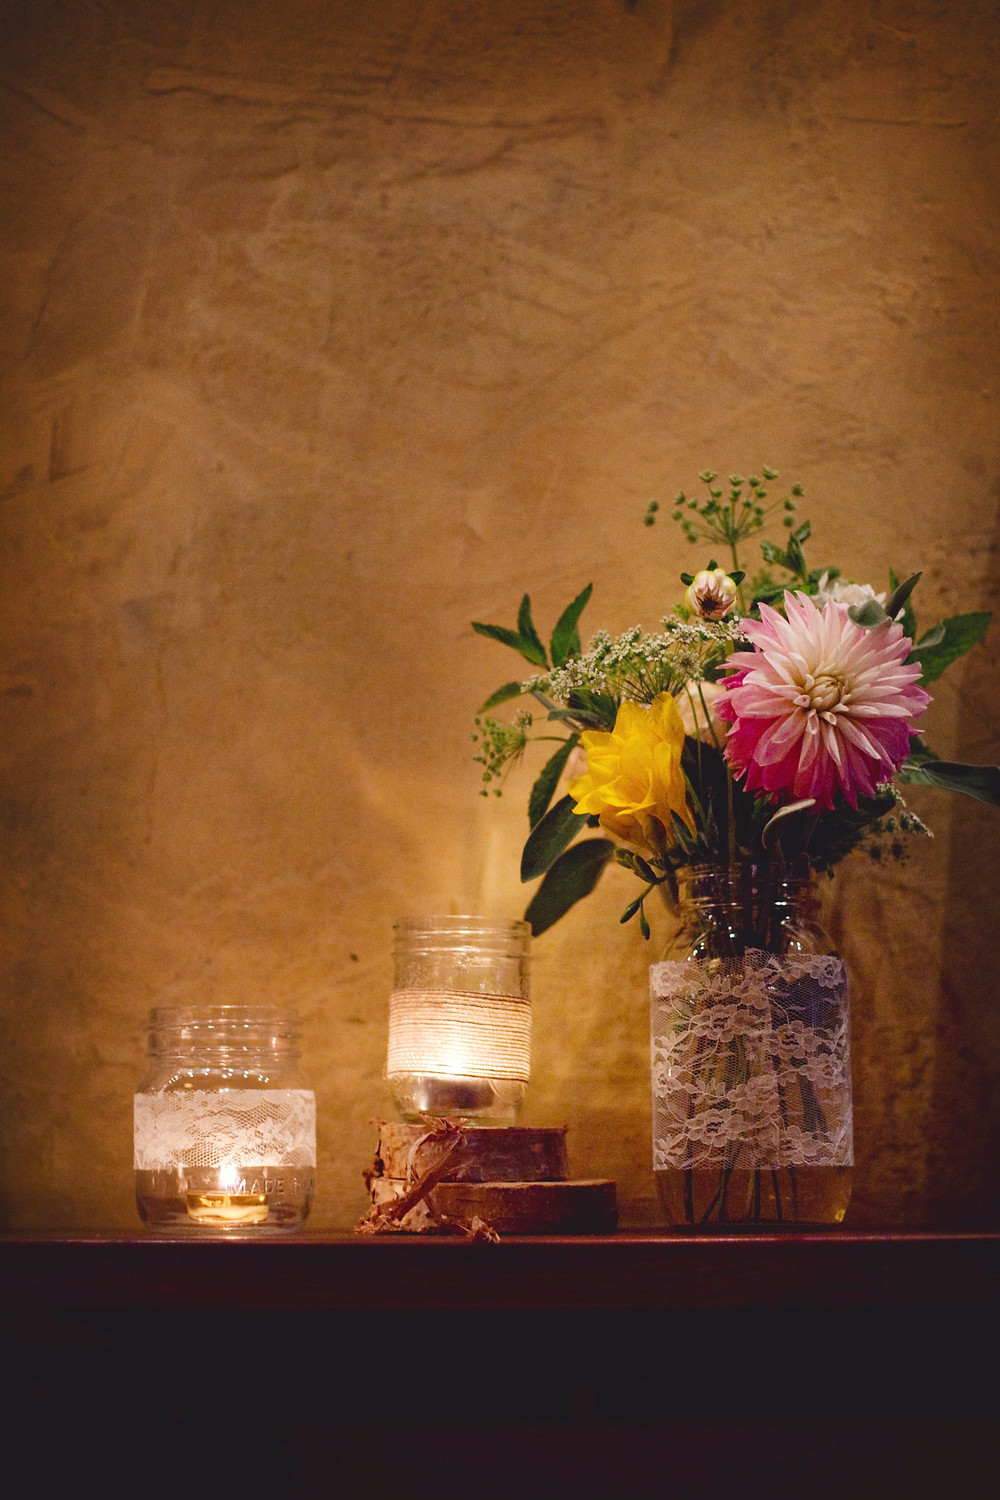 Lace wrapped mason jars on top of wooden rounds old a beautiful garden bouquet on top of a wooden shelf in a rustic Italian restaurant.